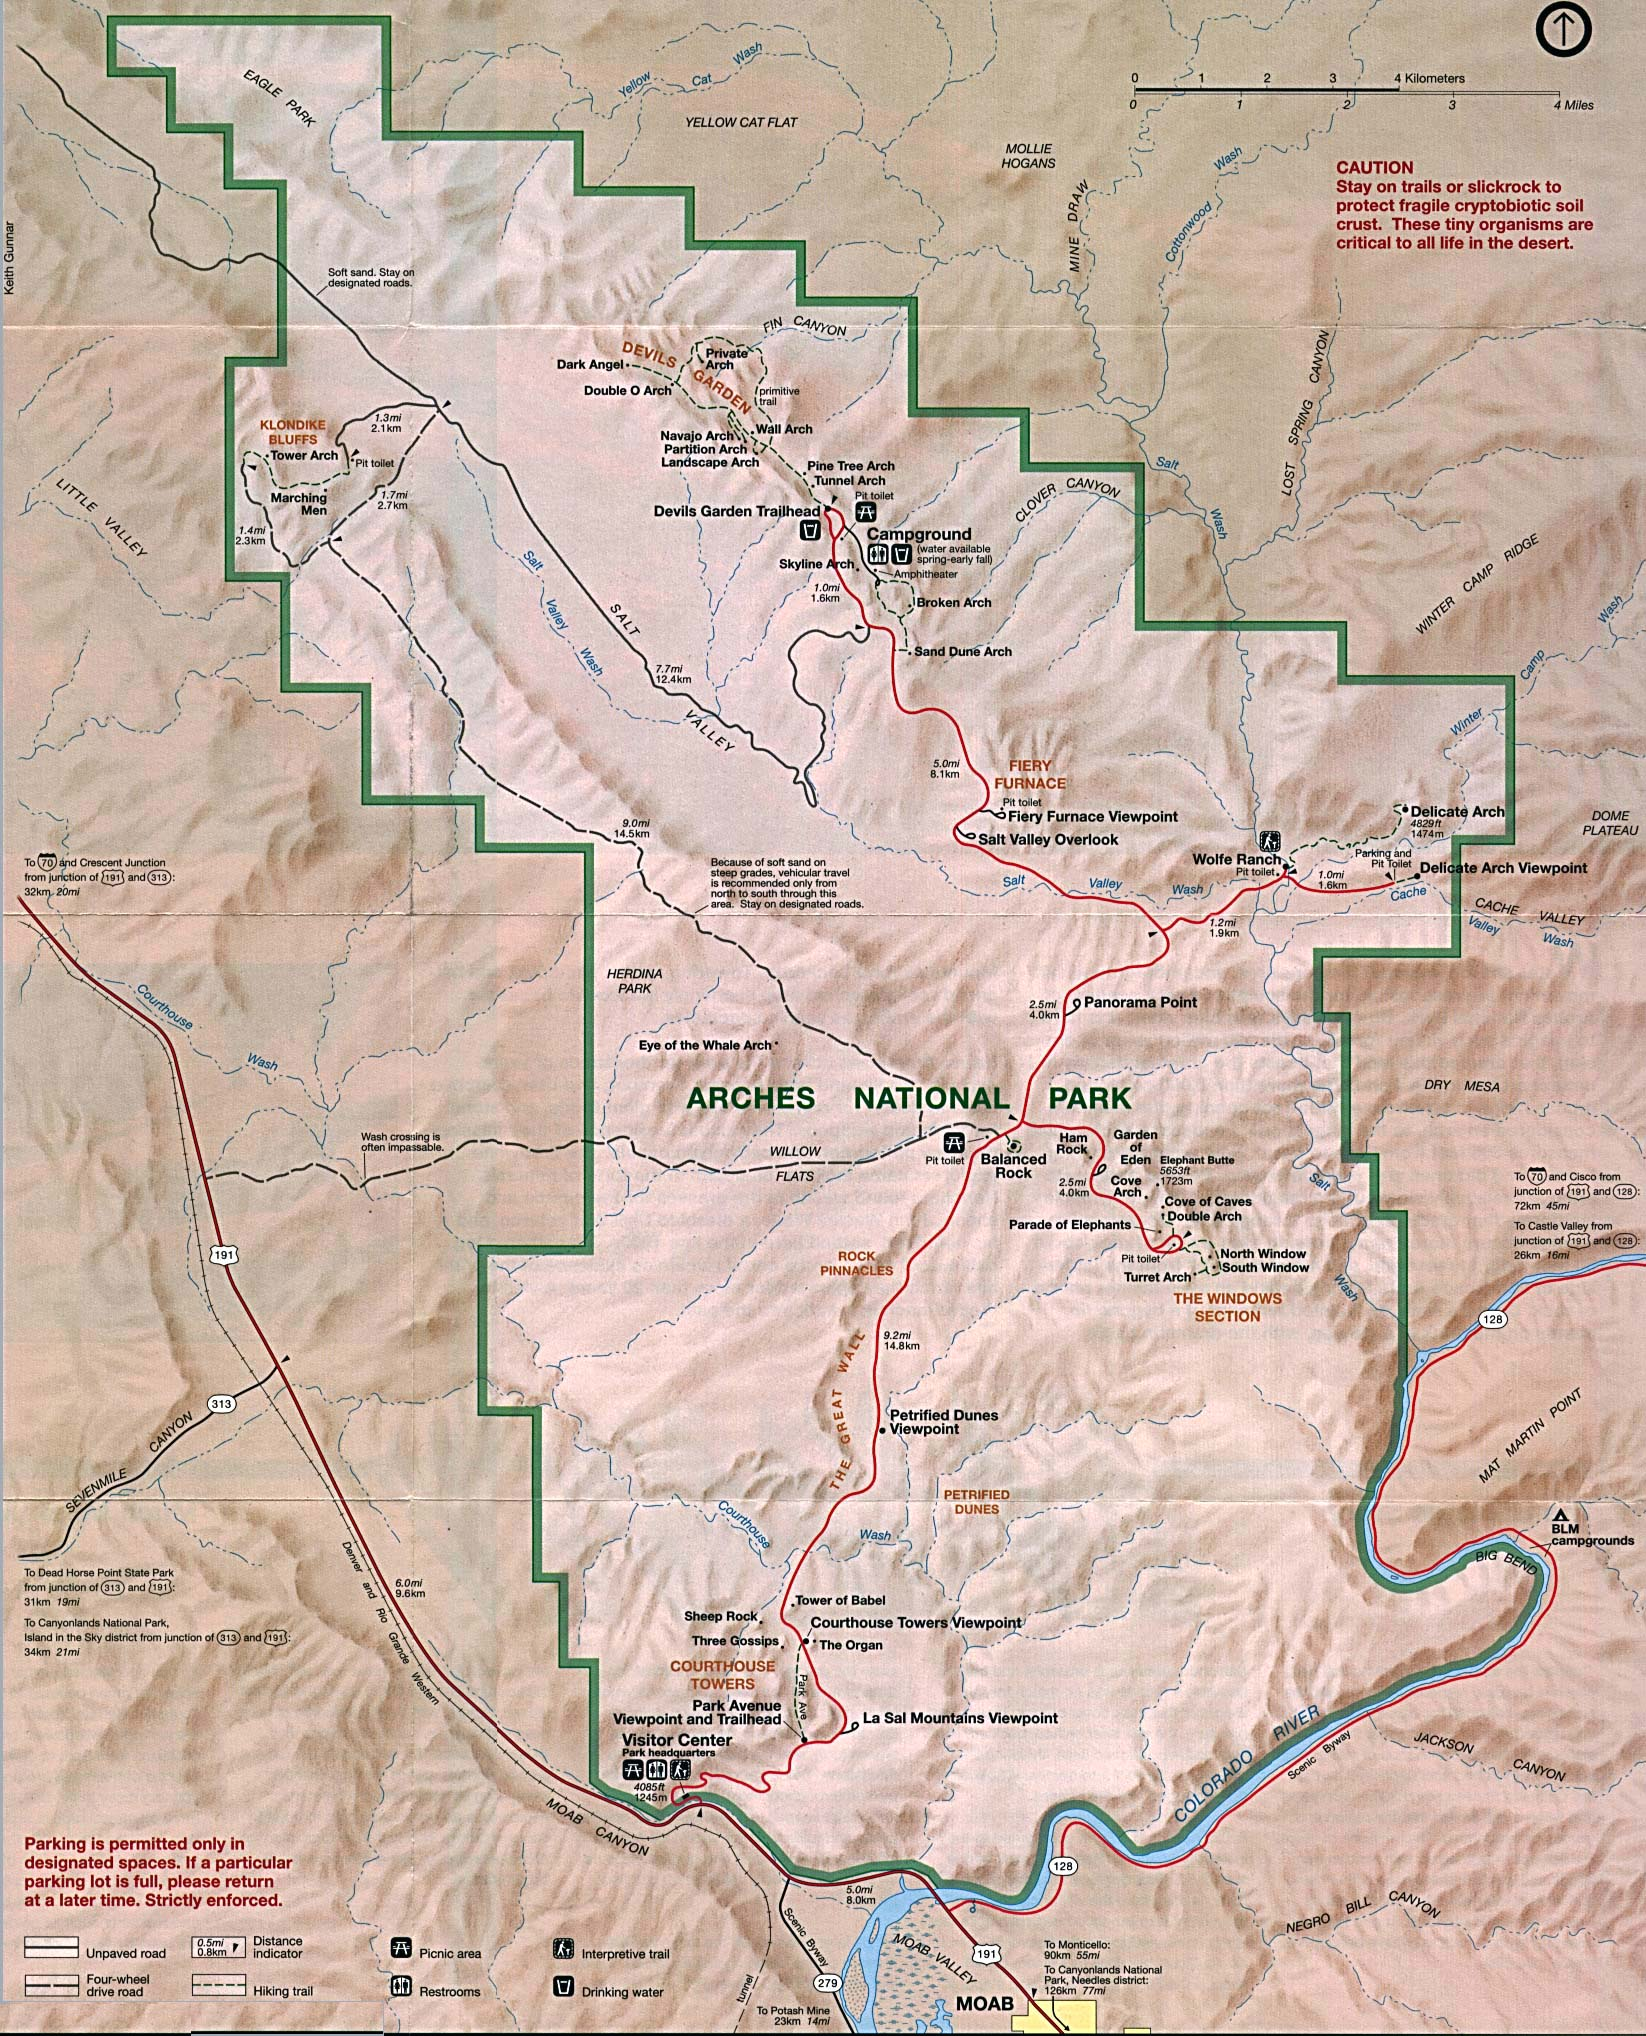 Arches National Park Map, Utah, United States